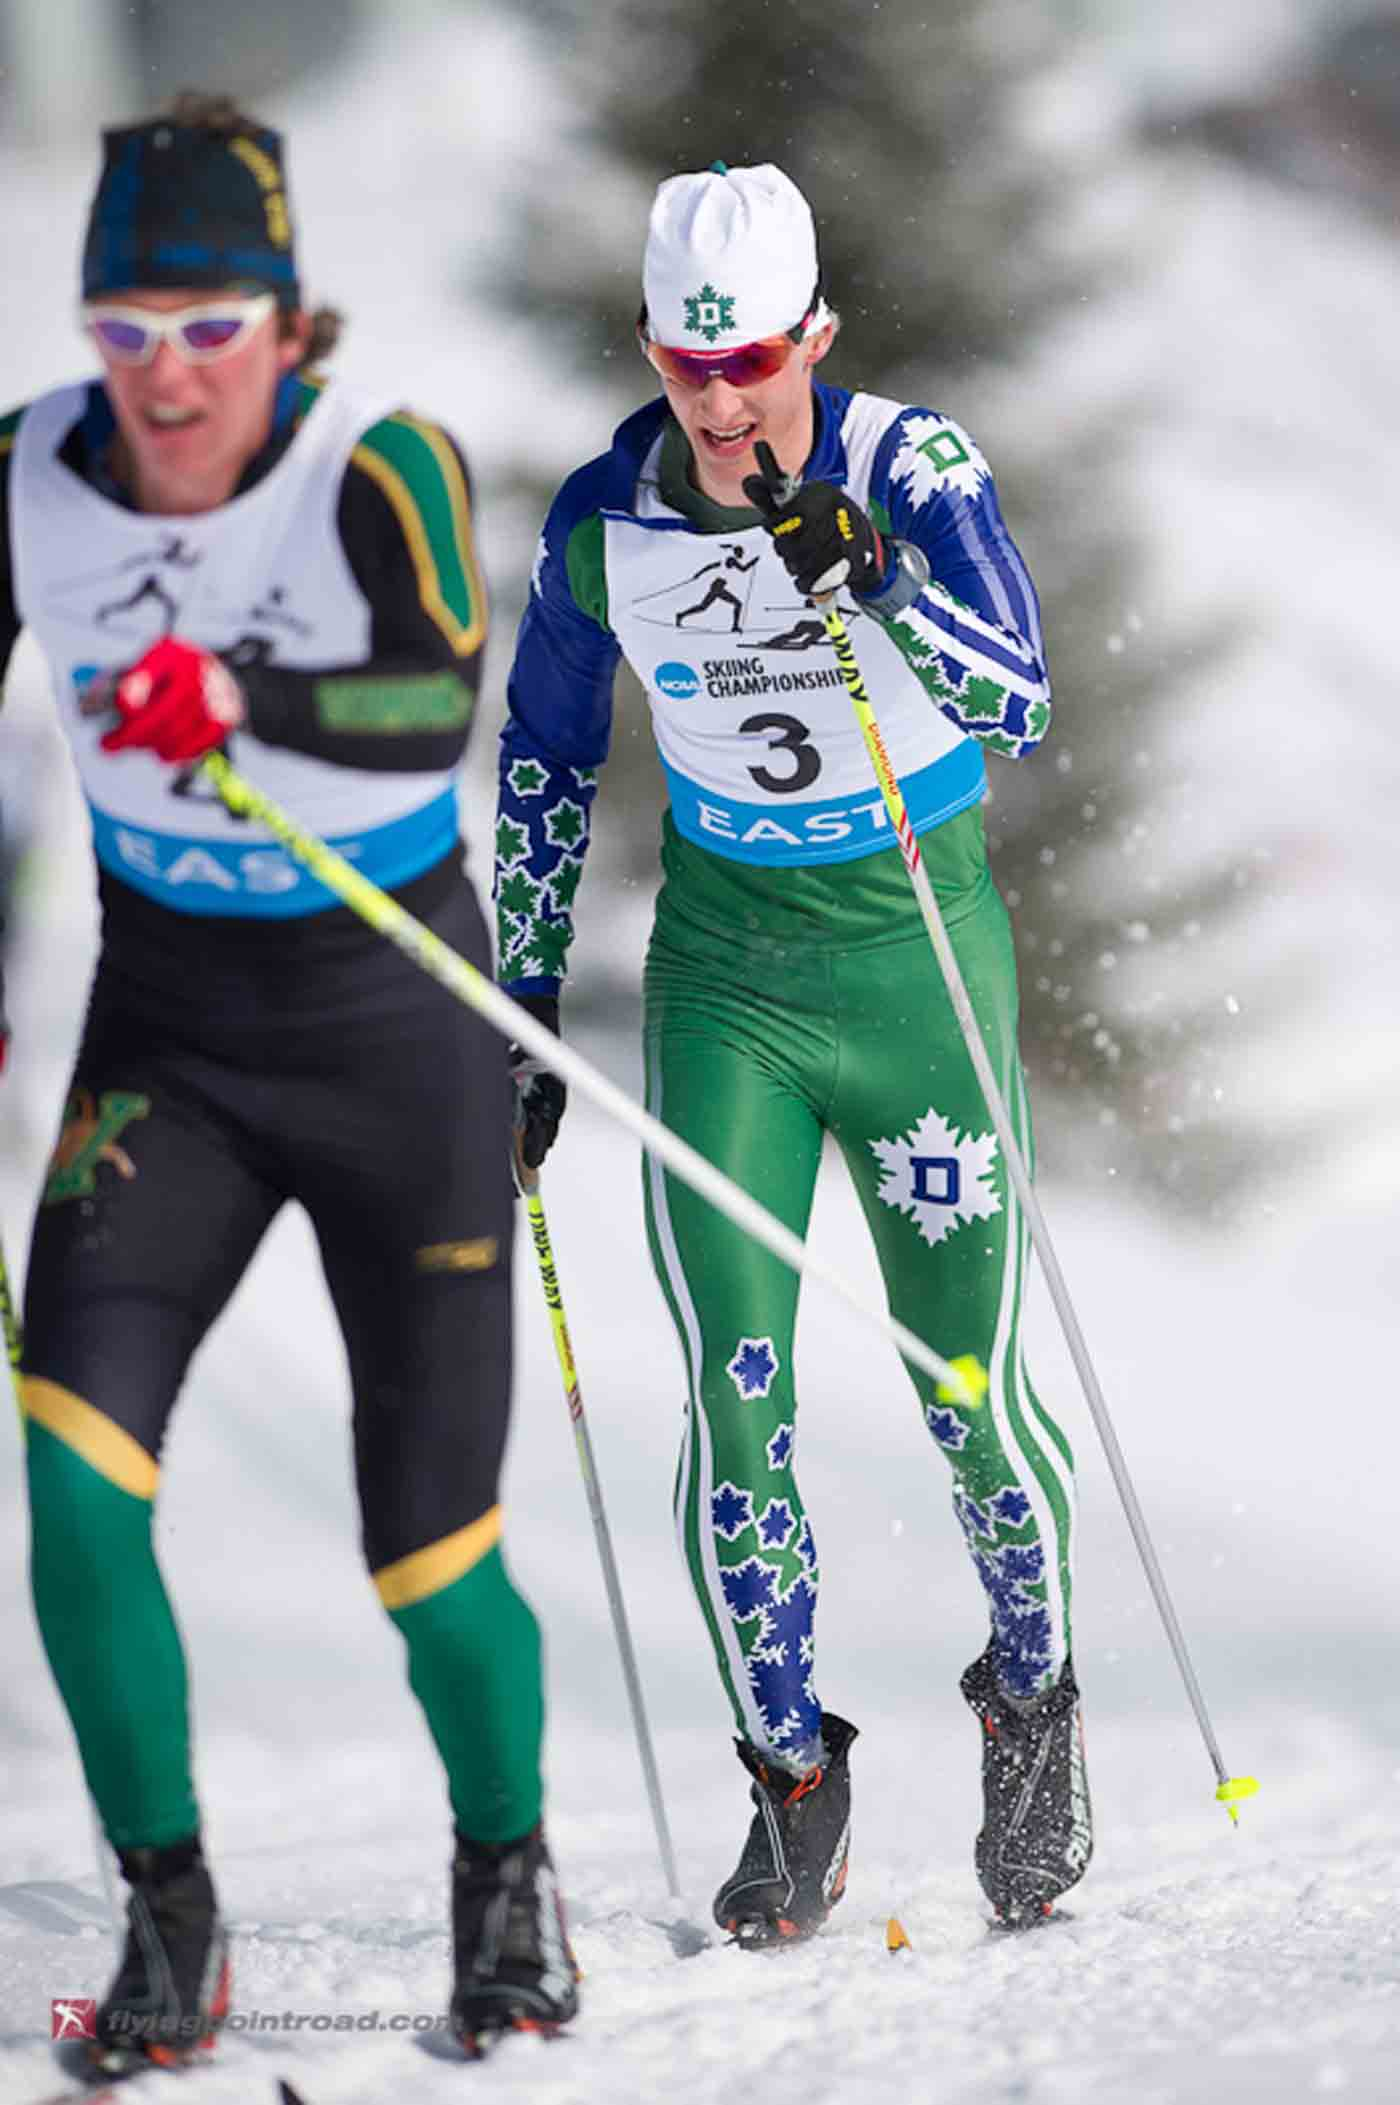 Dartmouth's Eric Packer en route to double-victory at EISA Champs. Credit: Steve Fuller / flyingpointroad.com